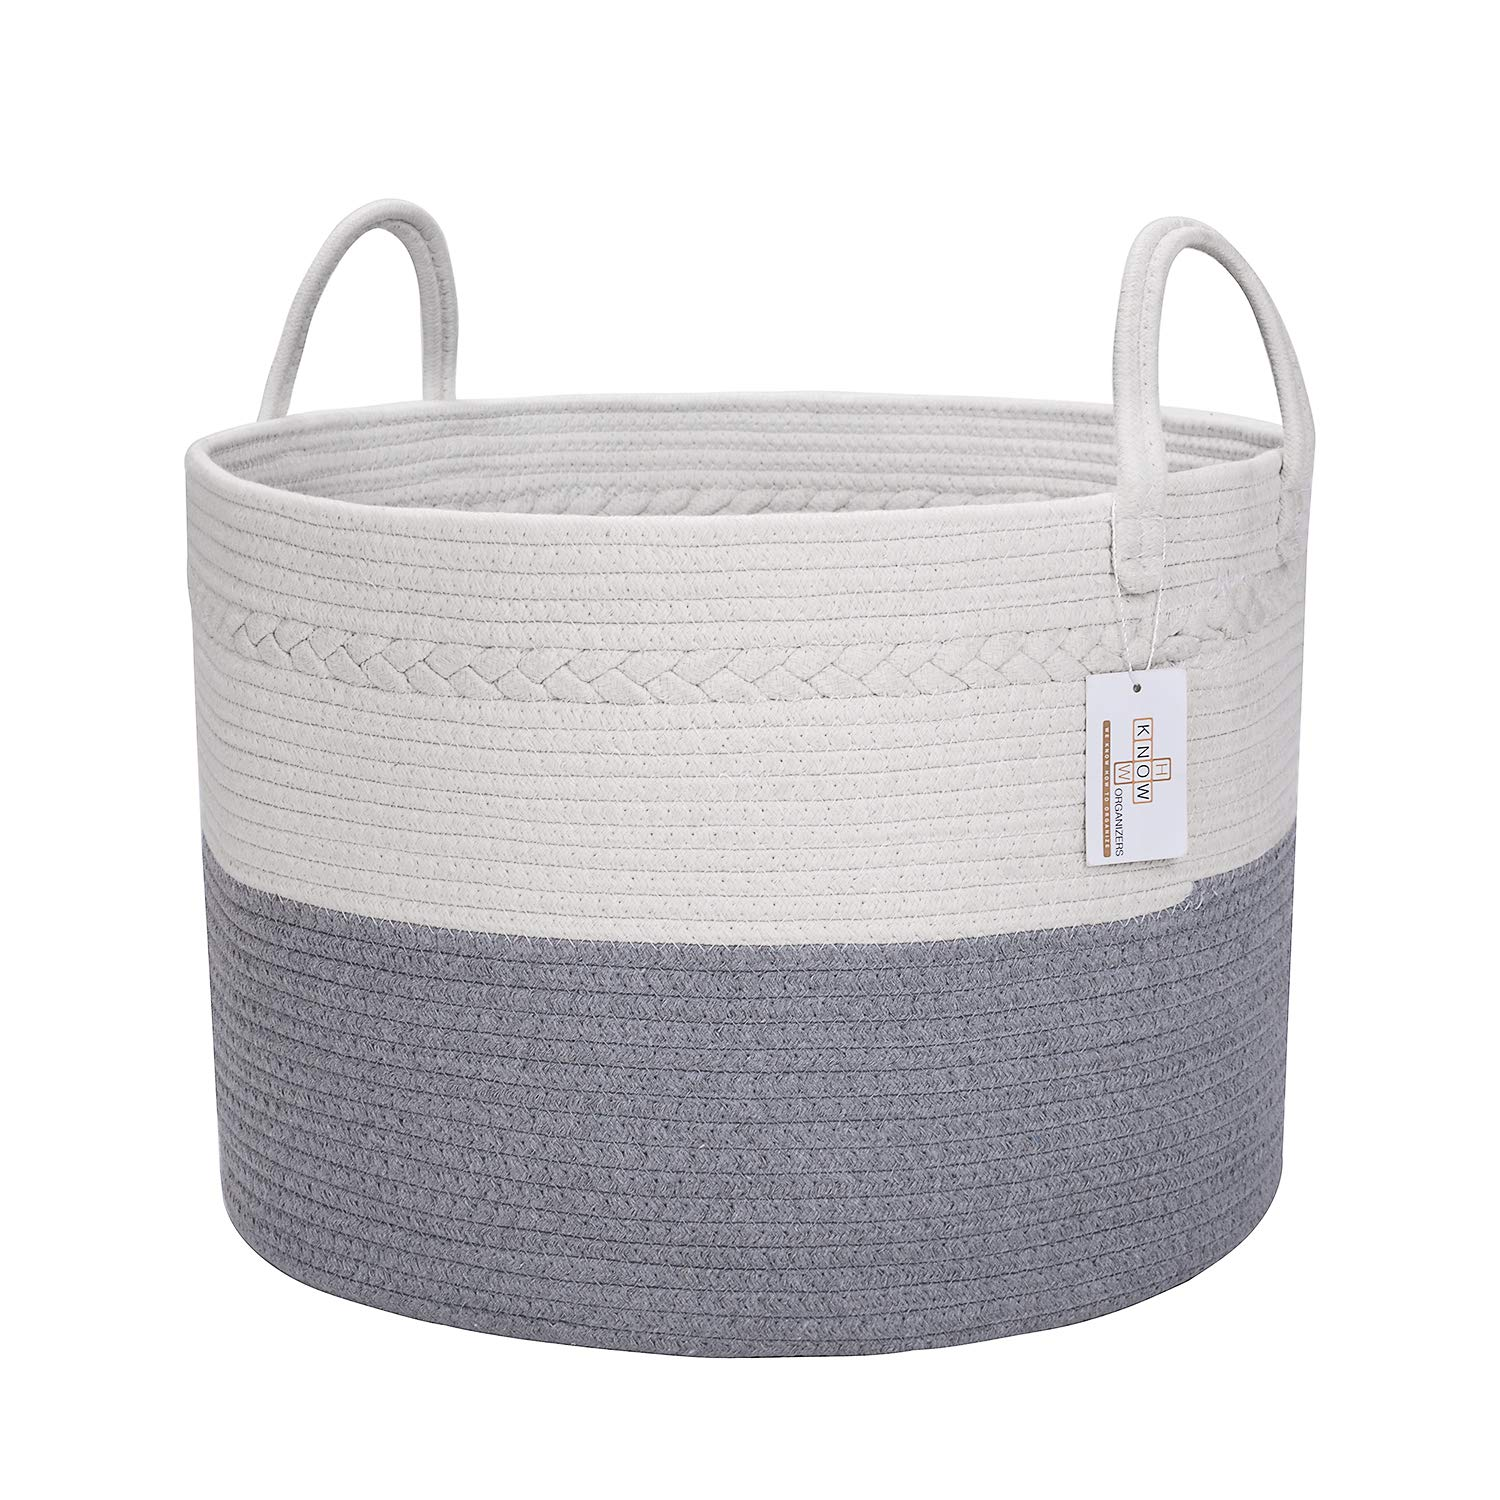 Large Cotton Rope Laundry Basket - Baby Laundry, Woven Laundry Basket, Dog Toy Basket, XXL Blanket Basket, Long Handles, Decorative Nursery Hamper | Grey White 20'' x 13'' Wide Extra Large